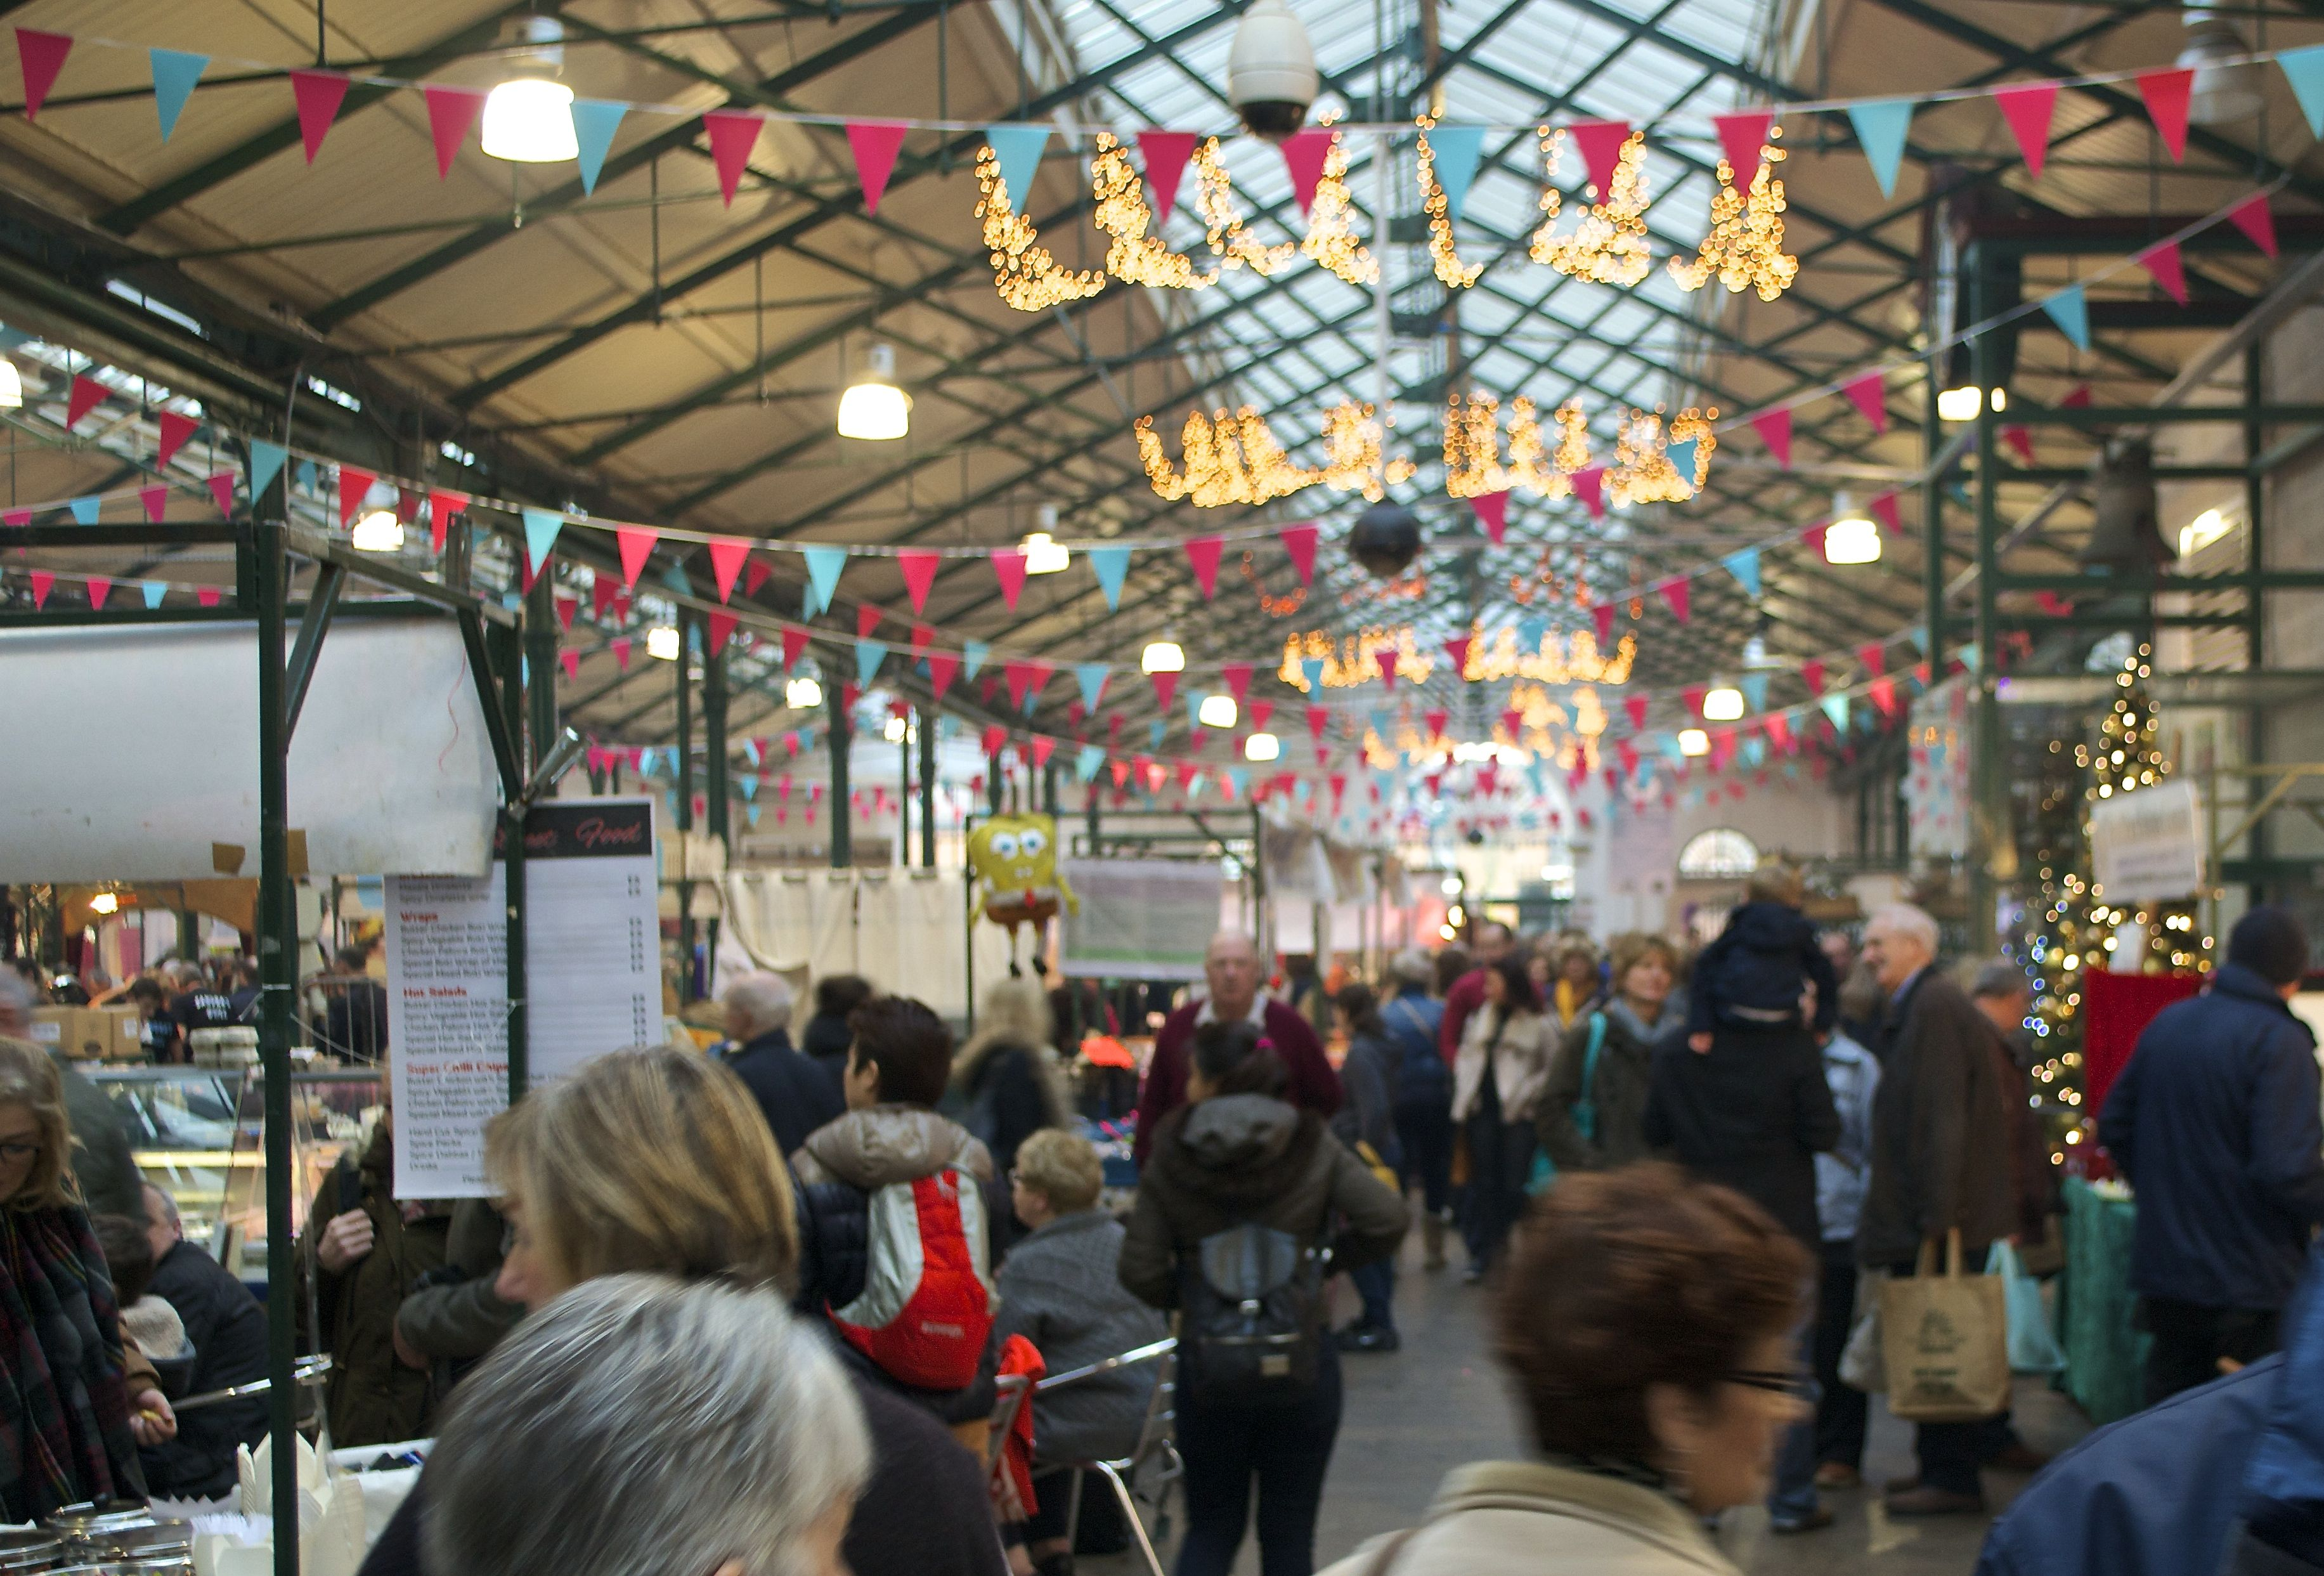 St George's Market Belfast, Things to Do in Belfast: St. George's Market | Rachel in Ireland